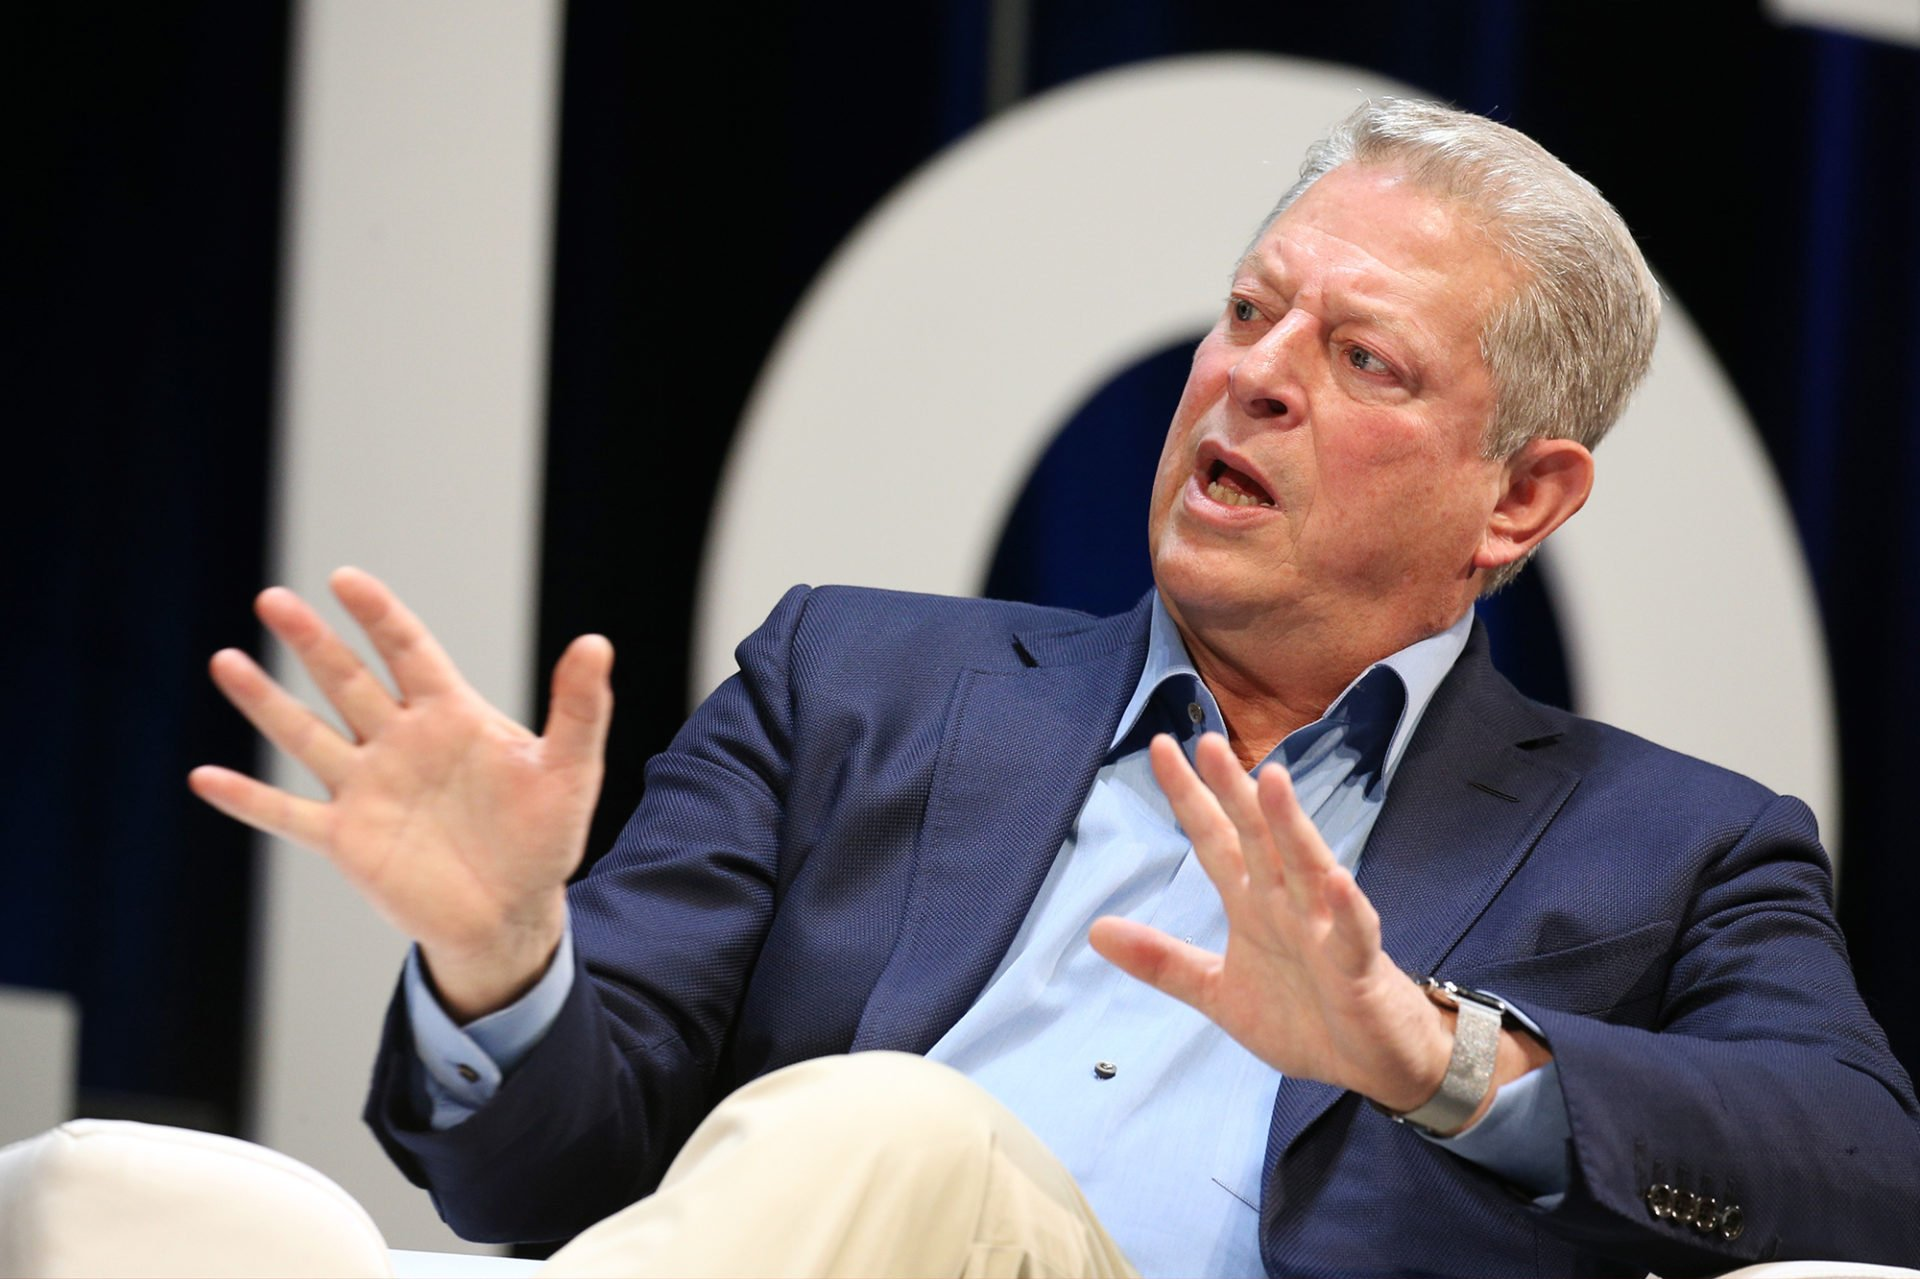 New Book Details How Al Gore Lavishly Profited Off Climate Lobbying